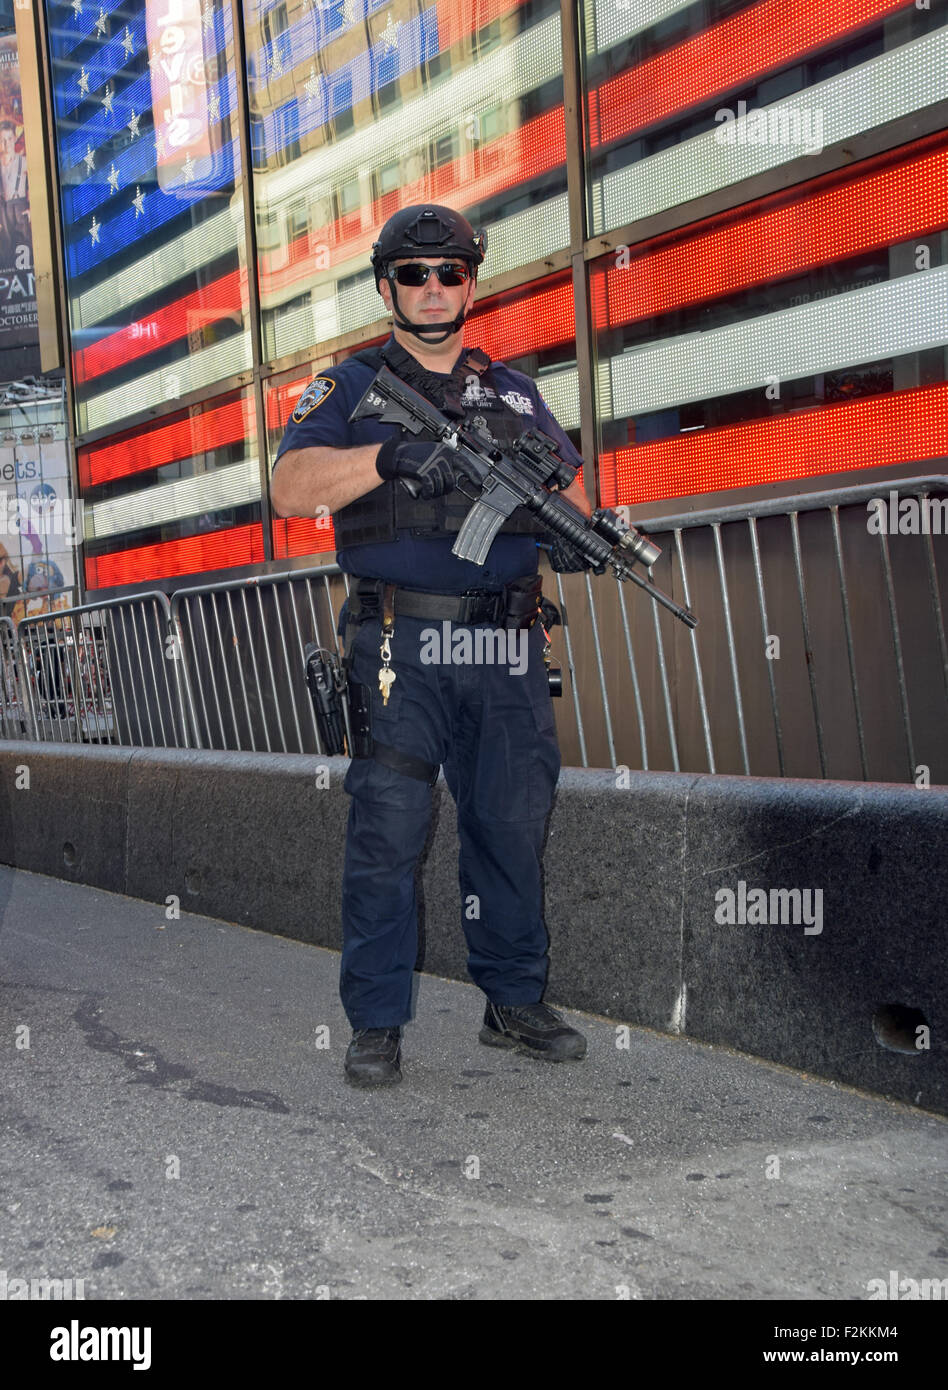 Portrait of a policeman from the NYPD Emergency Services unit patrolling in Times Square, Manhattan, New York City. - Stock Image